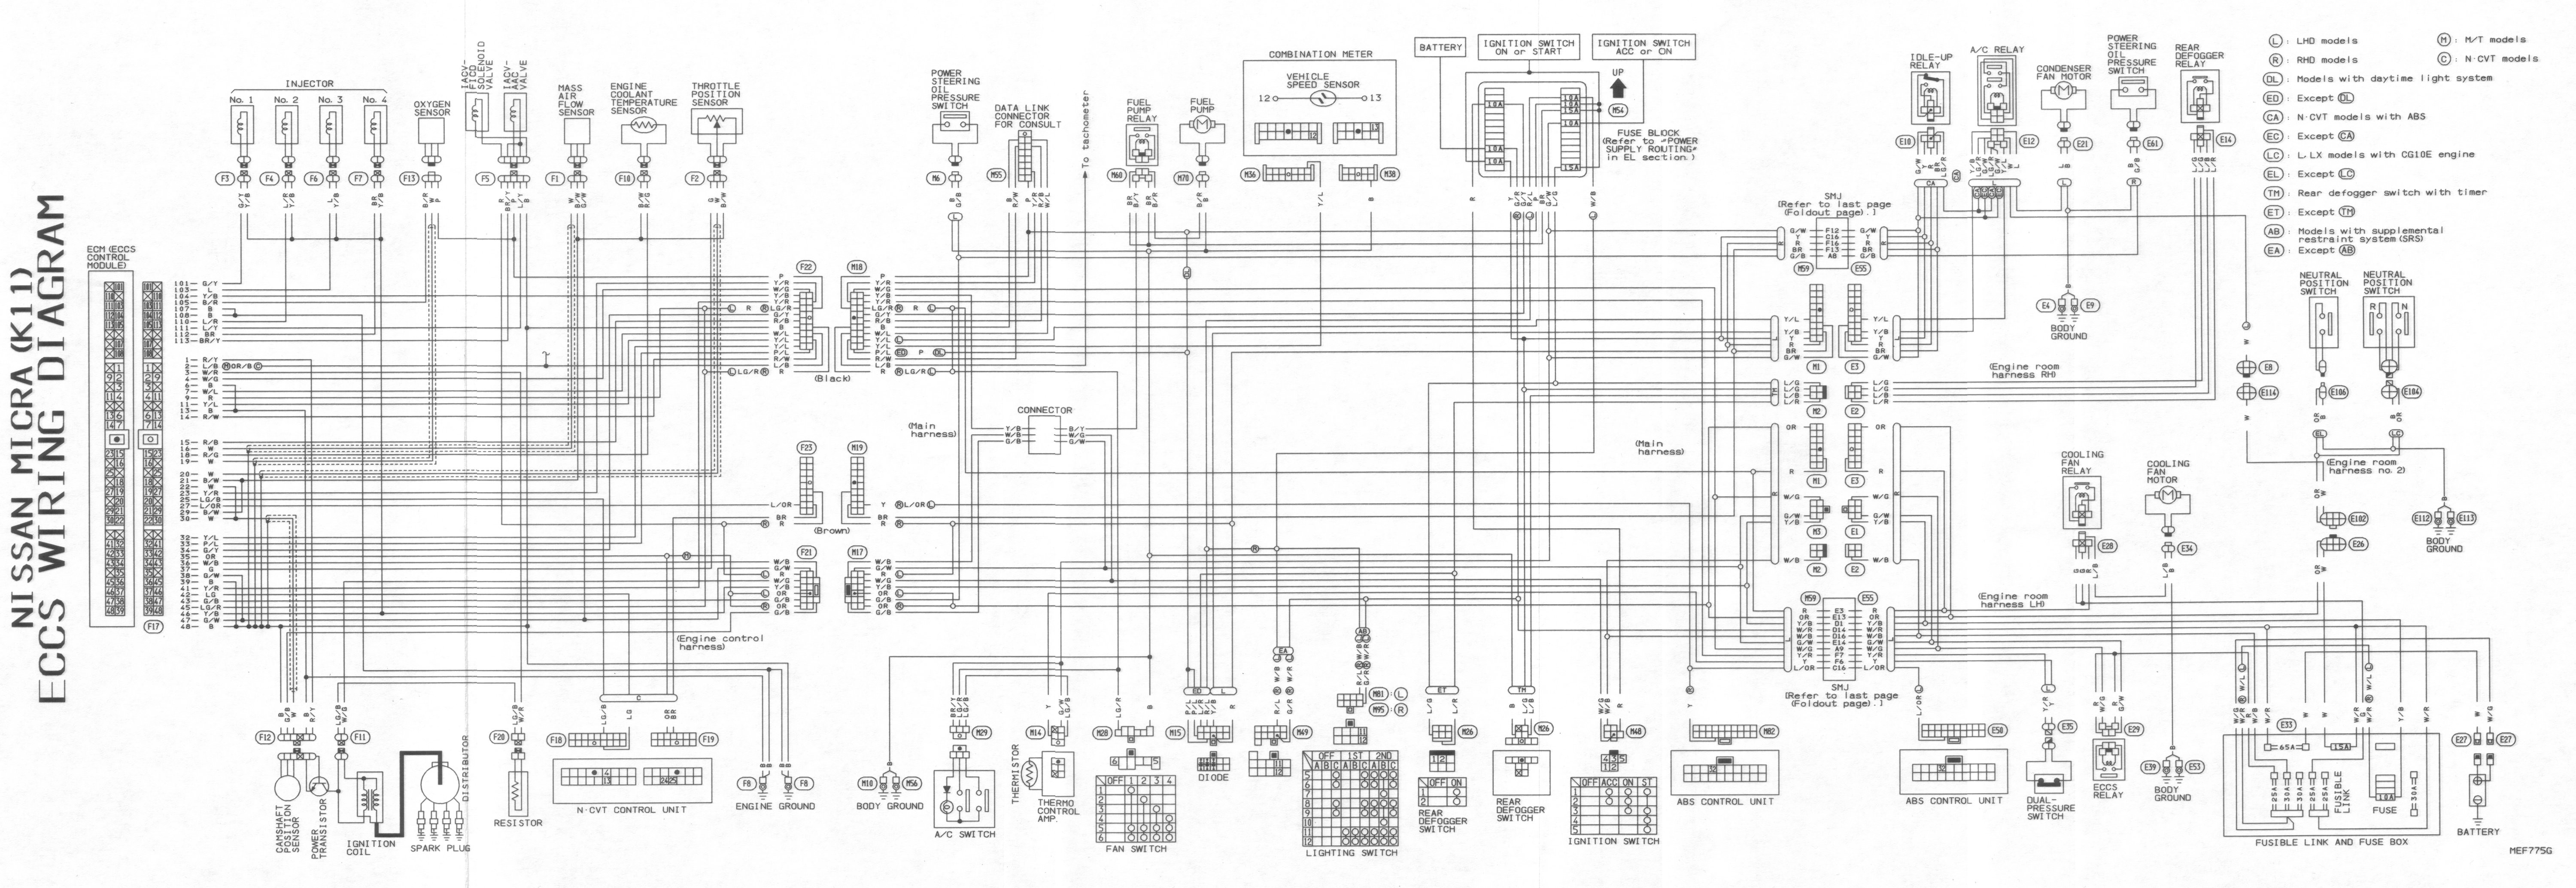 [DIAGRAM] Nissan K11 Wiring Diagram FULL Version HD